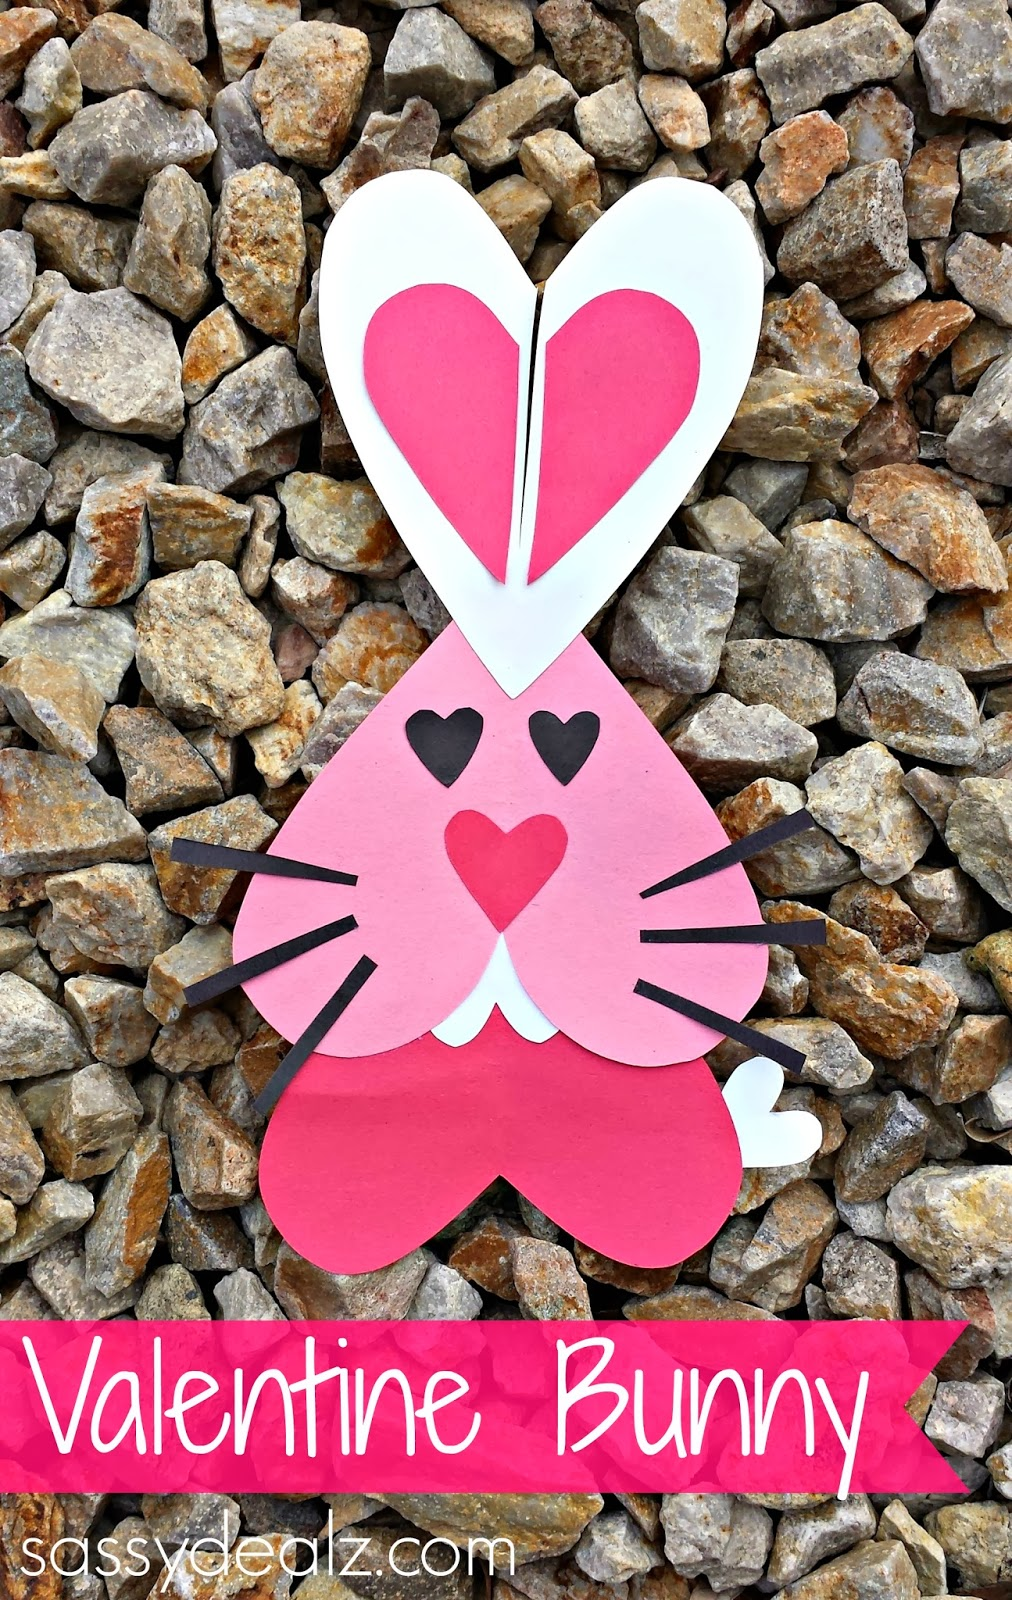 kids-craft-from-heart-shaped-paper11.jpg